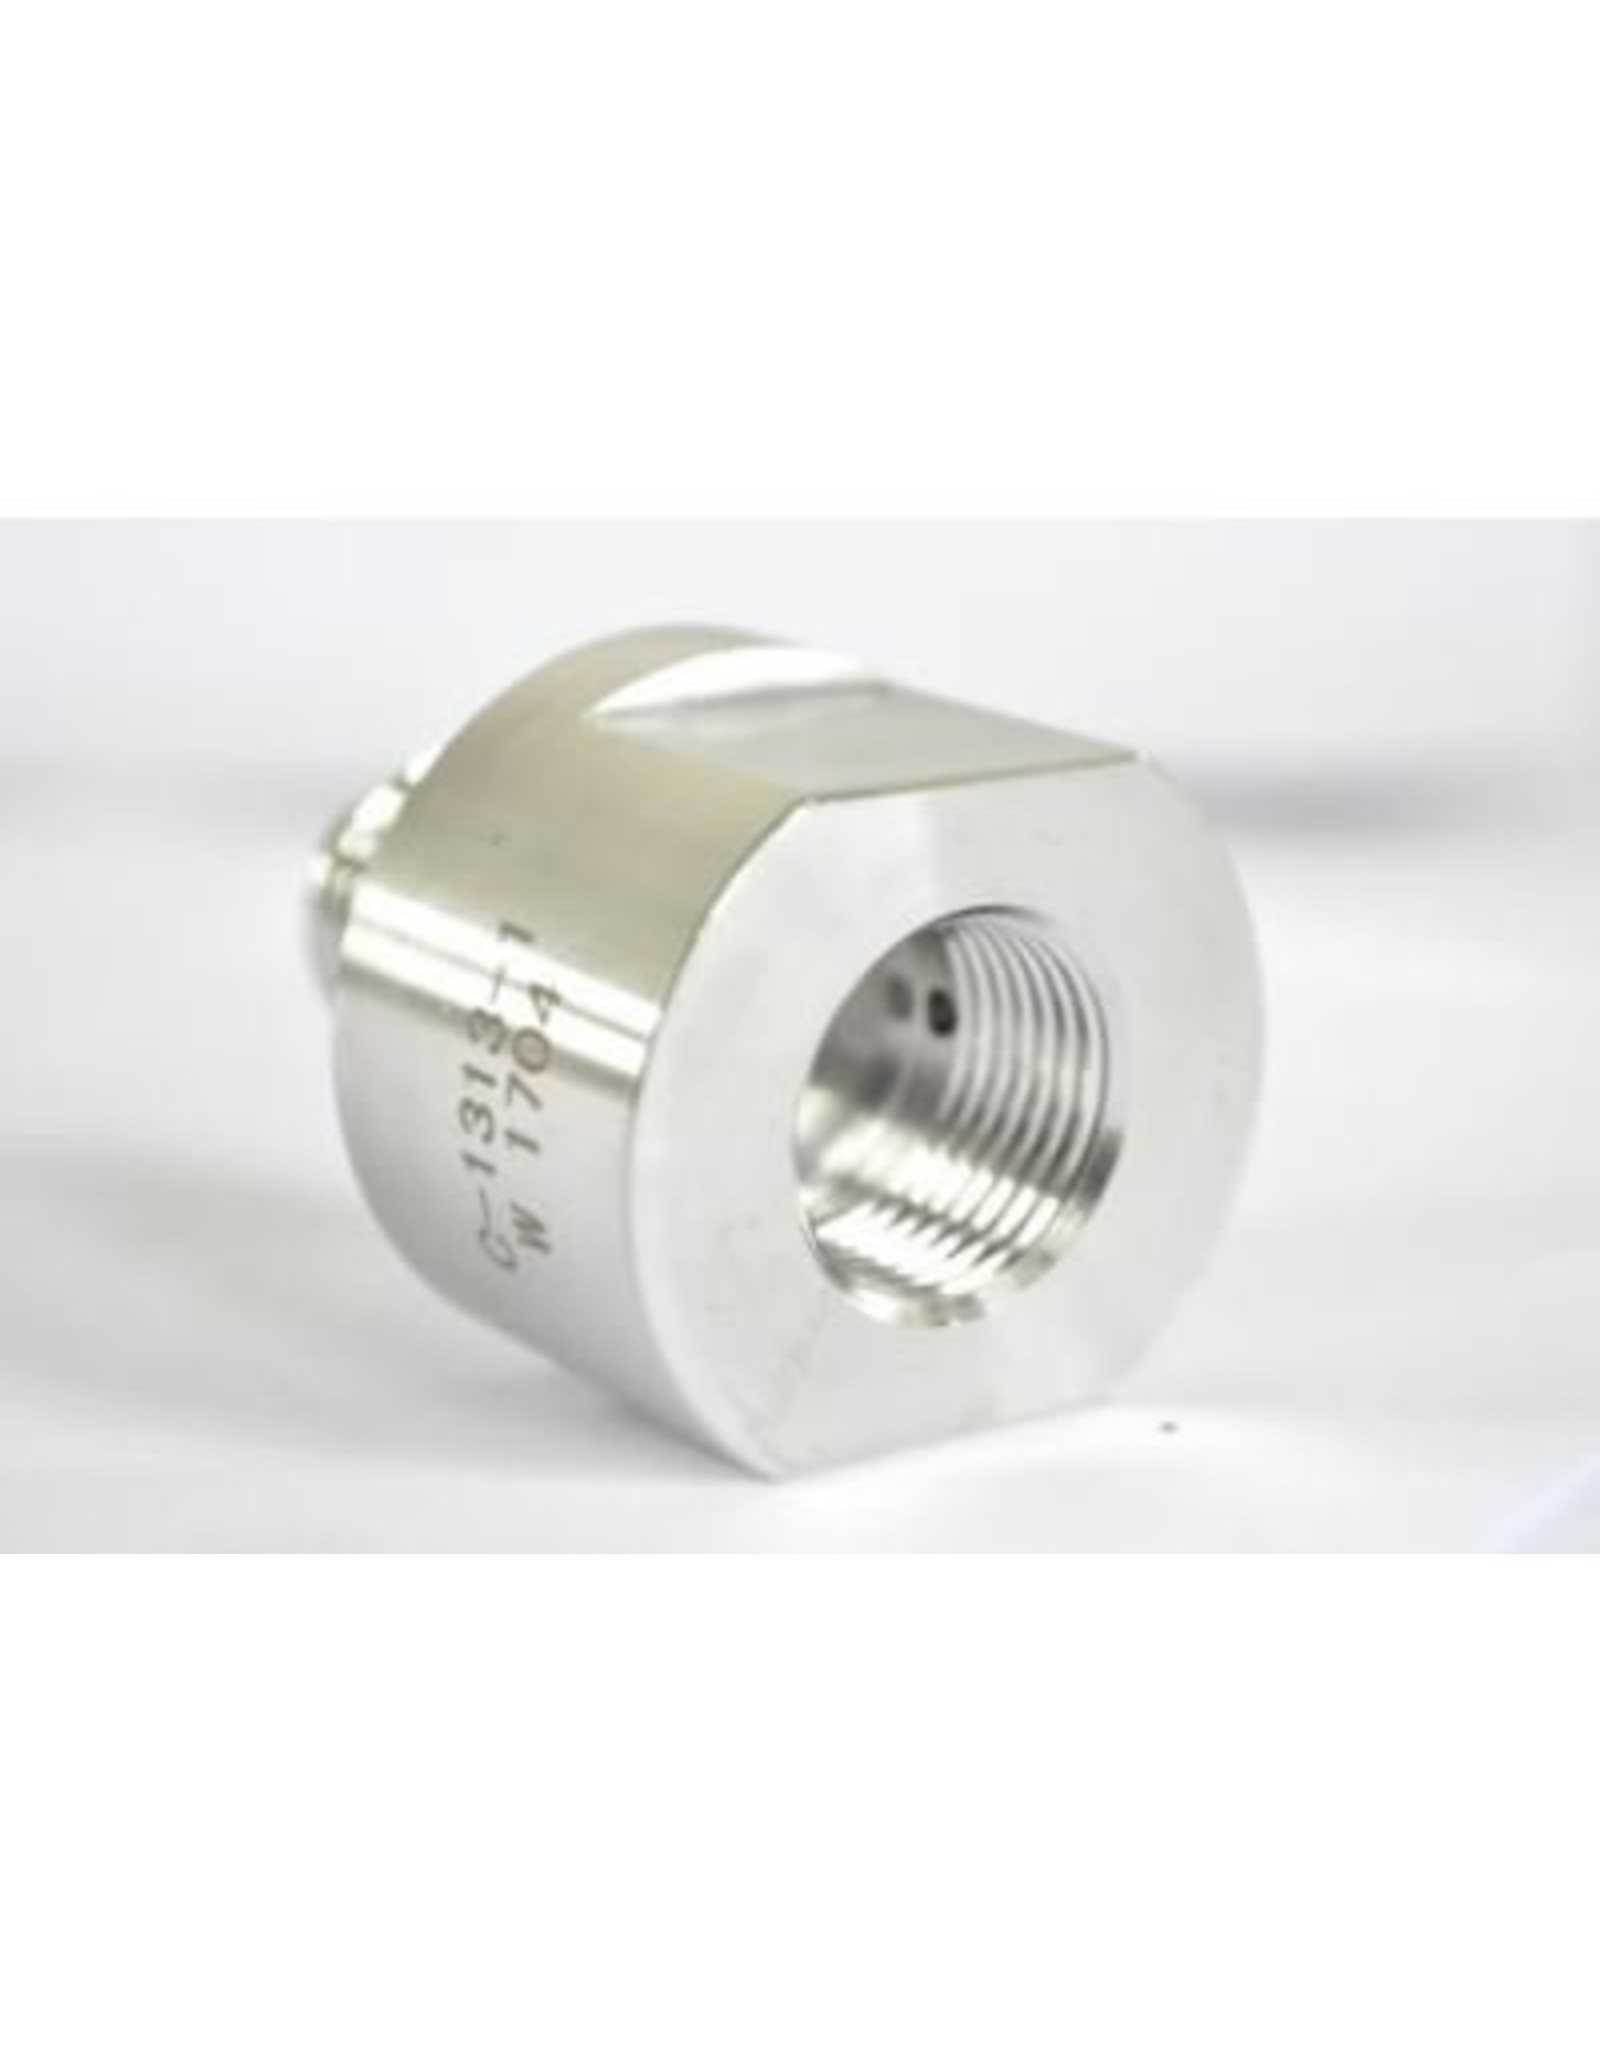 Flow Style Outlet Body, Check Valve